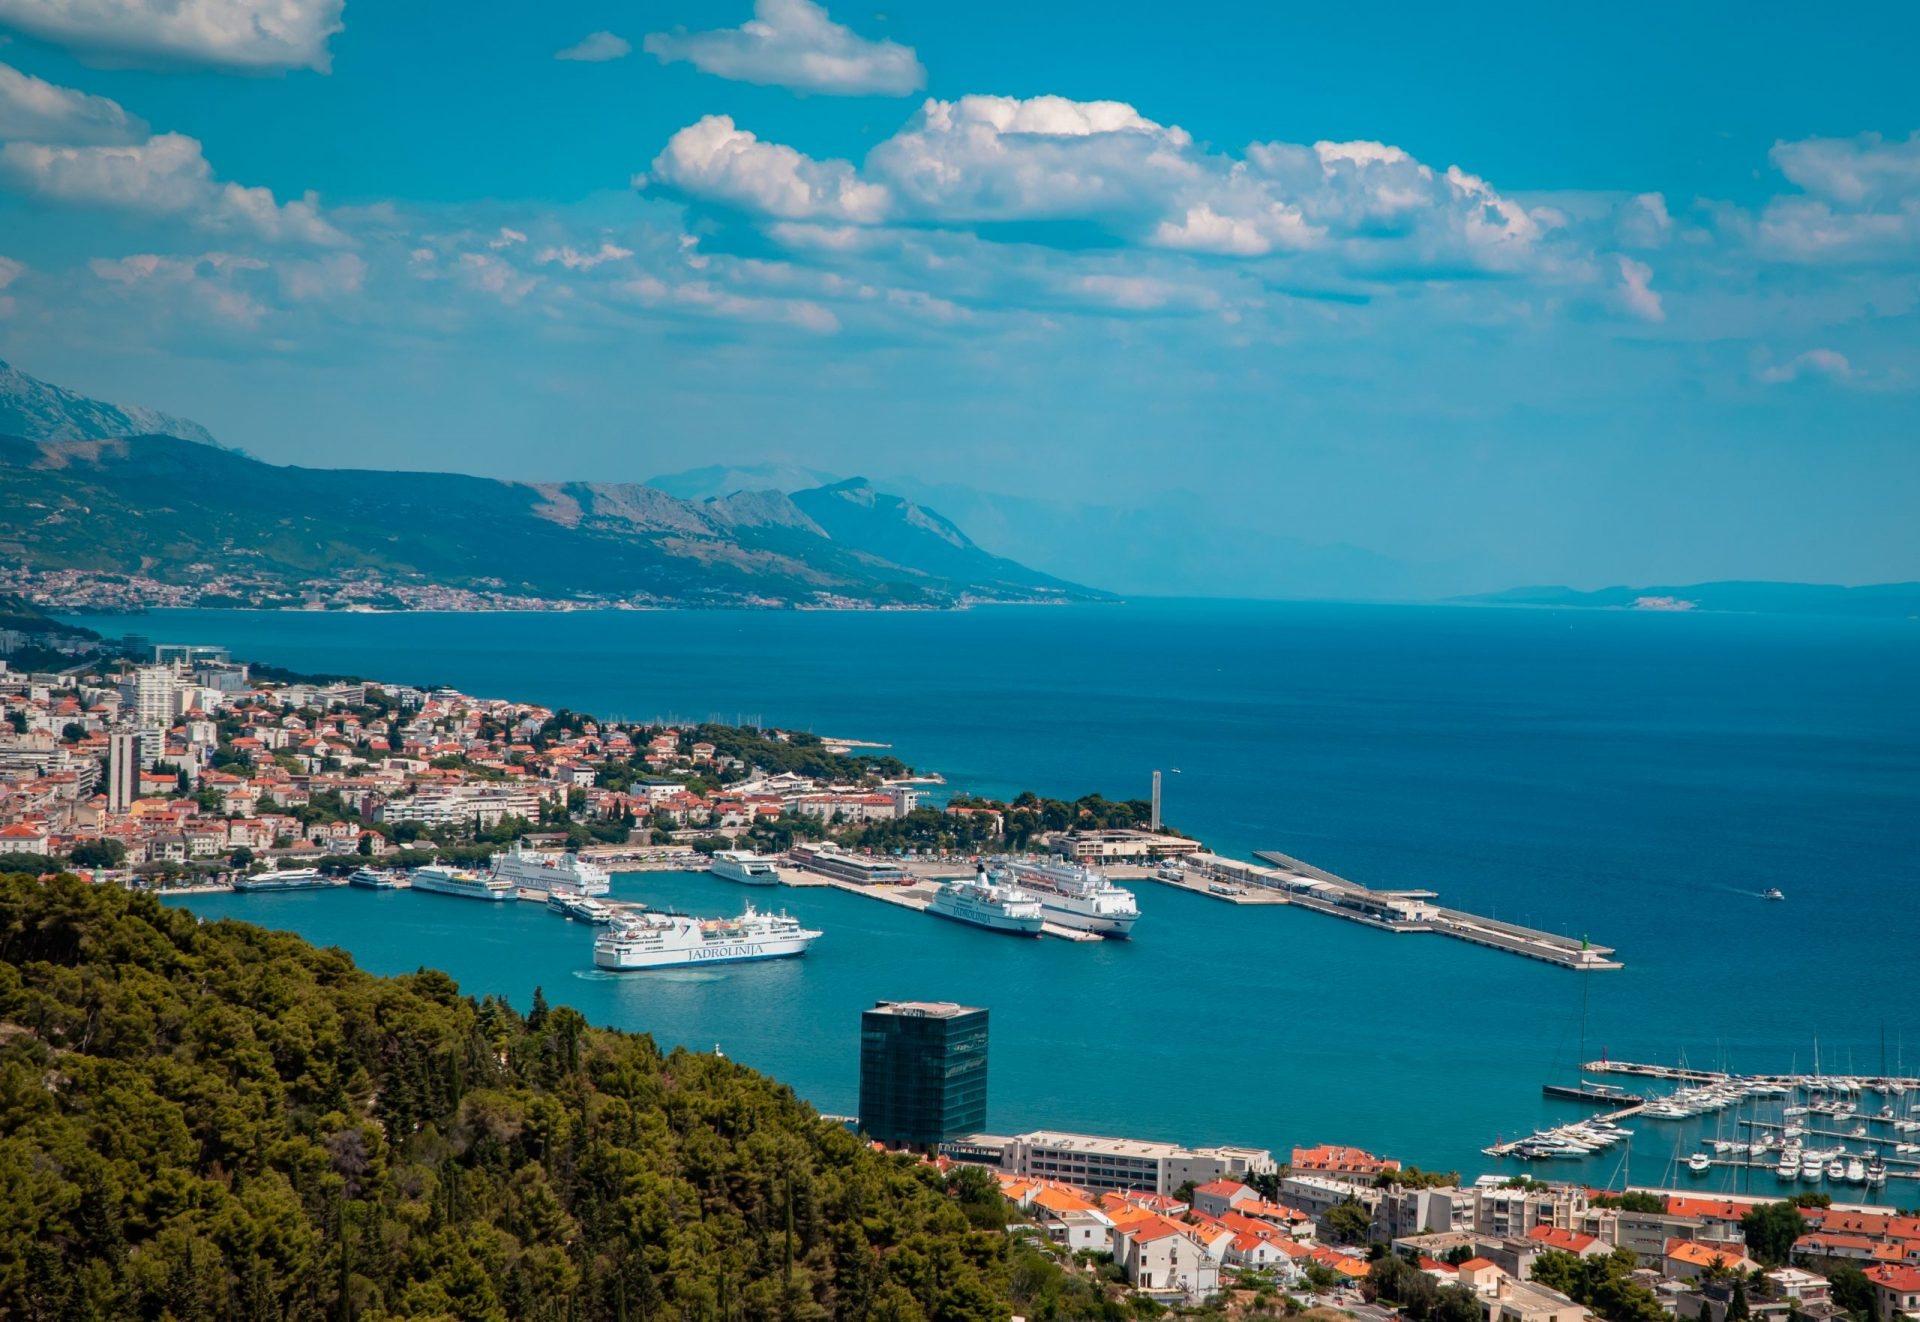 Best places to go in Croatia as a digital nomad - panoramic view of Split, the second largest city